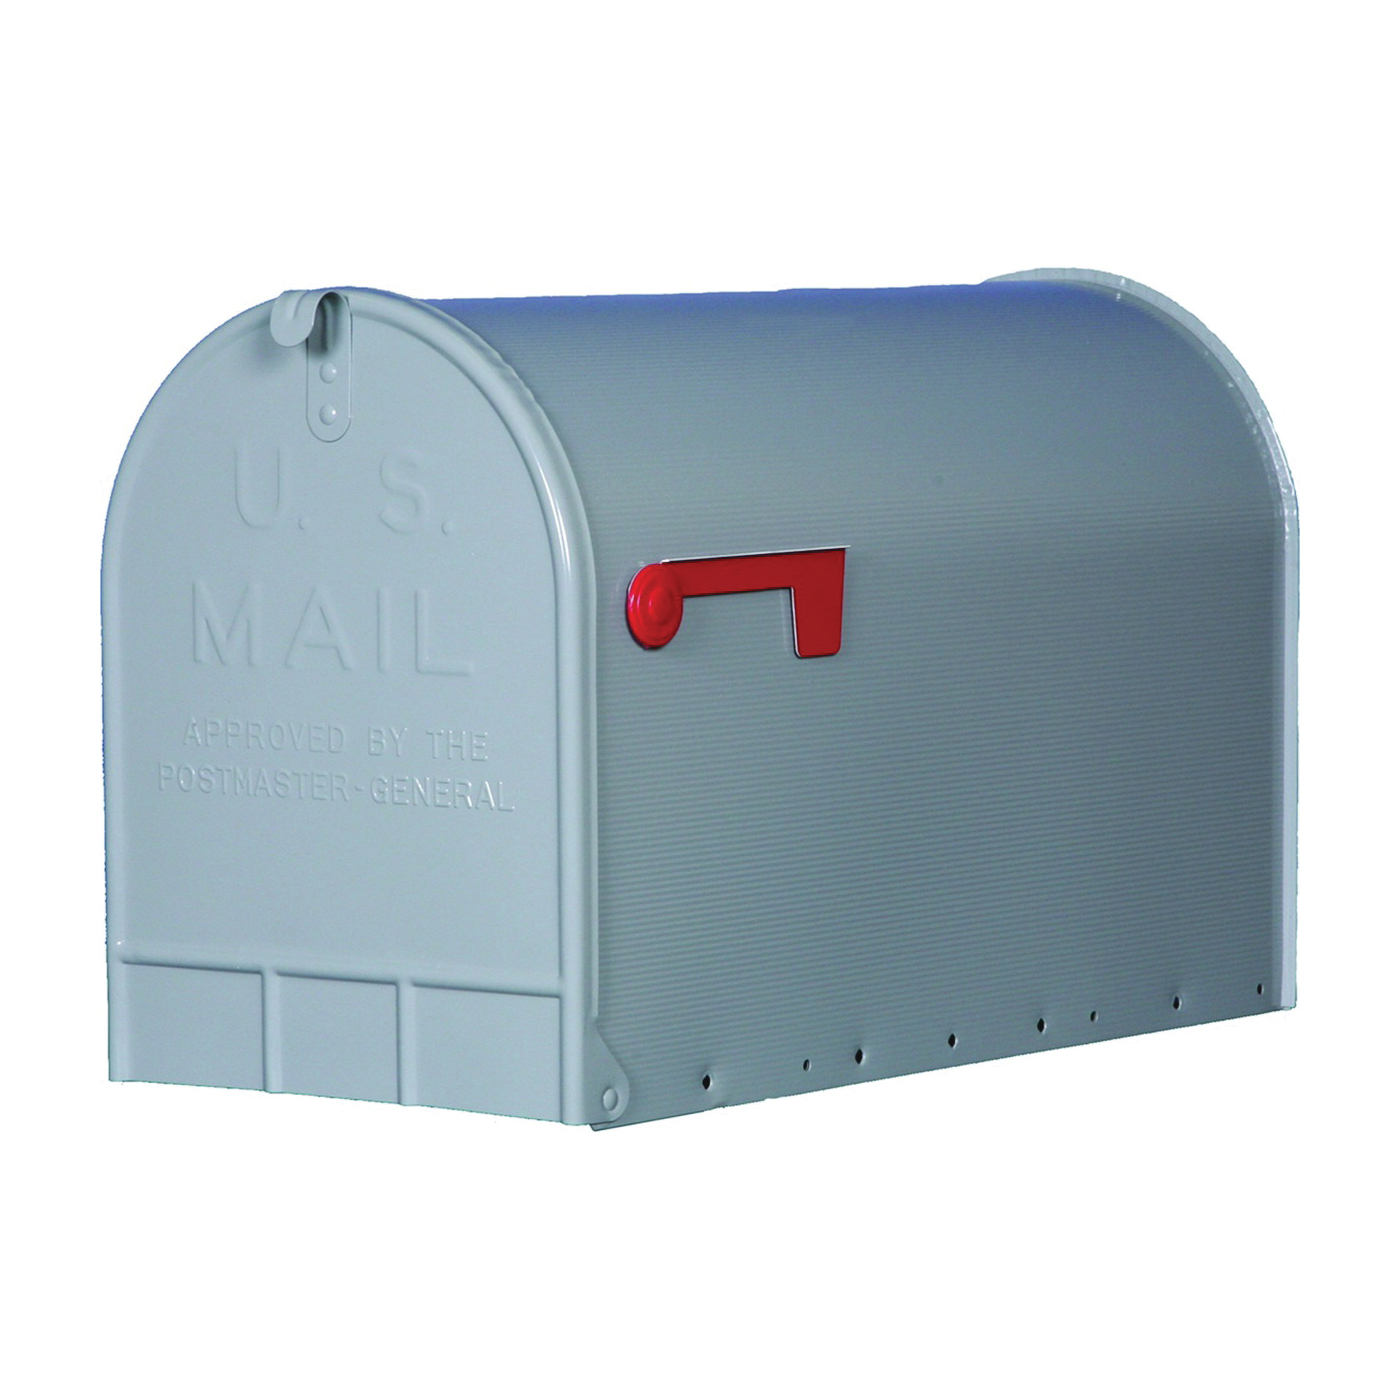 Picture of Gibraltar Mailboxes ST200000 Rural Mailbox, 3175 cu-in Capacity, Galvanized Steel, Powder-Coated, 11.7 in W, Gray